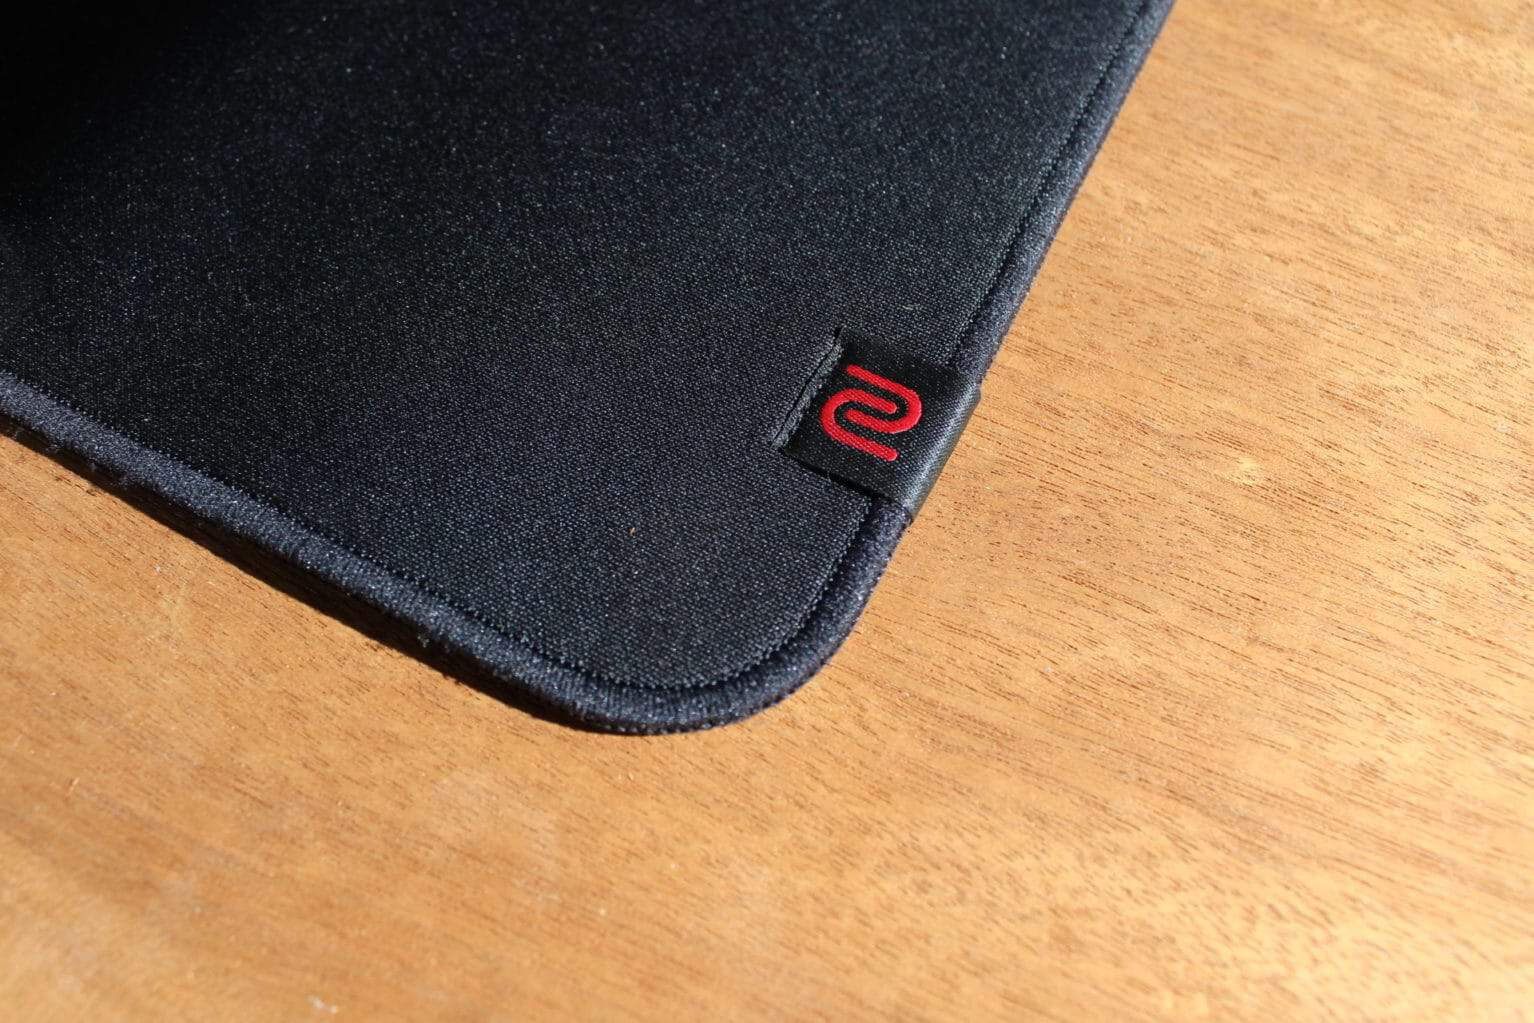 Zowie G-SR Review Main